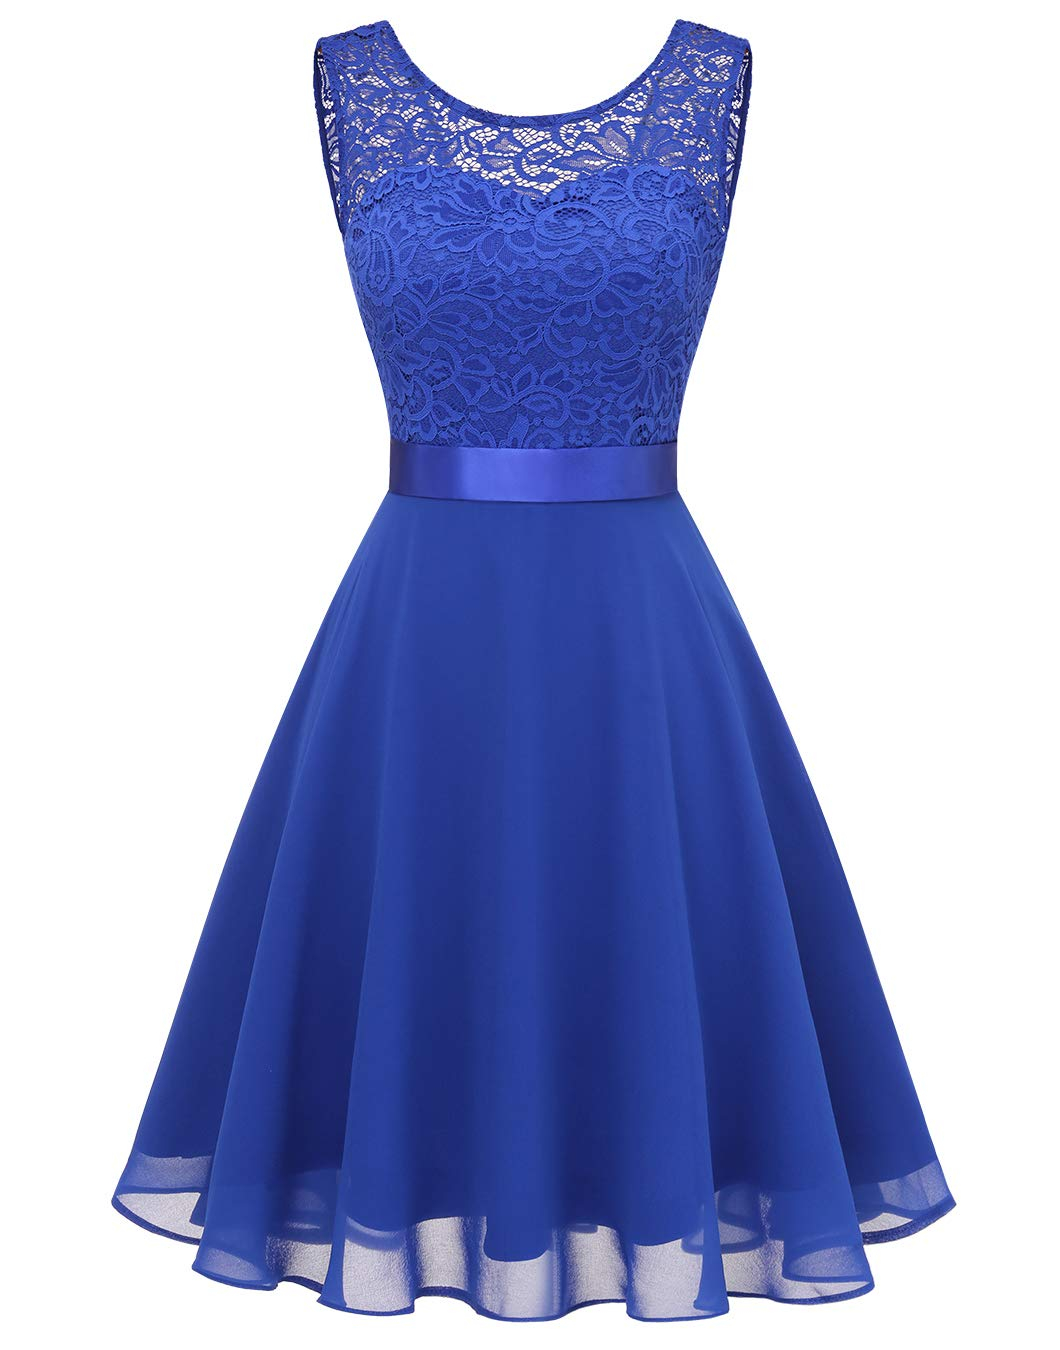 Available at Amazon: BeryLove Women's Short Floral Lace Bridesmaid Dress A-line Swing Party Dress